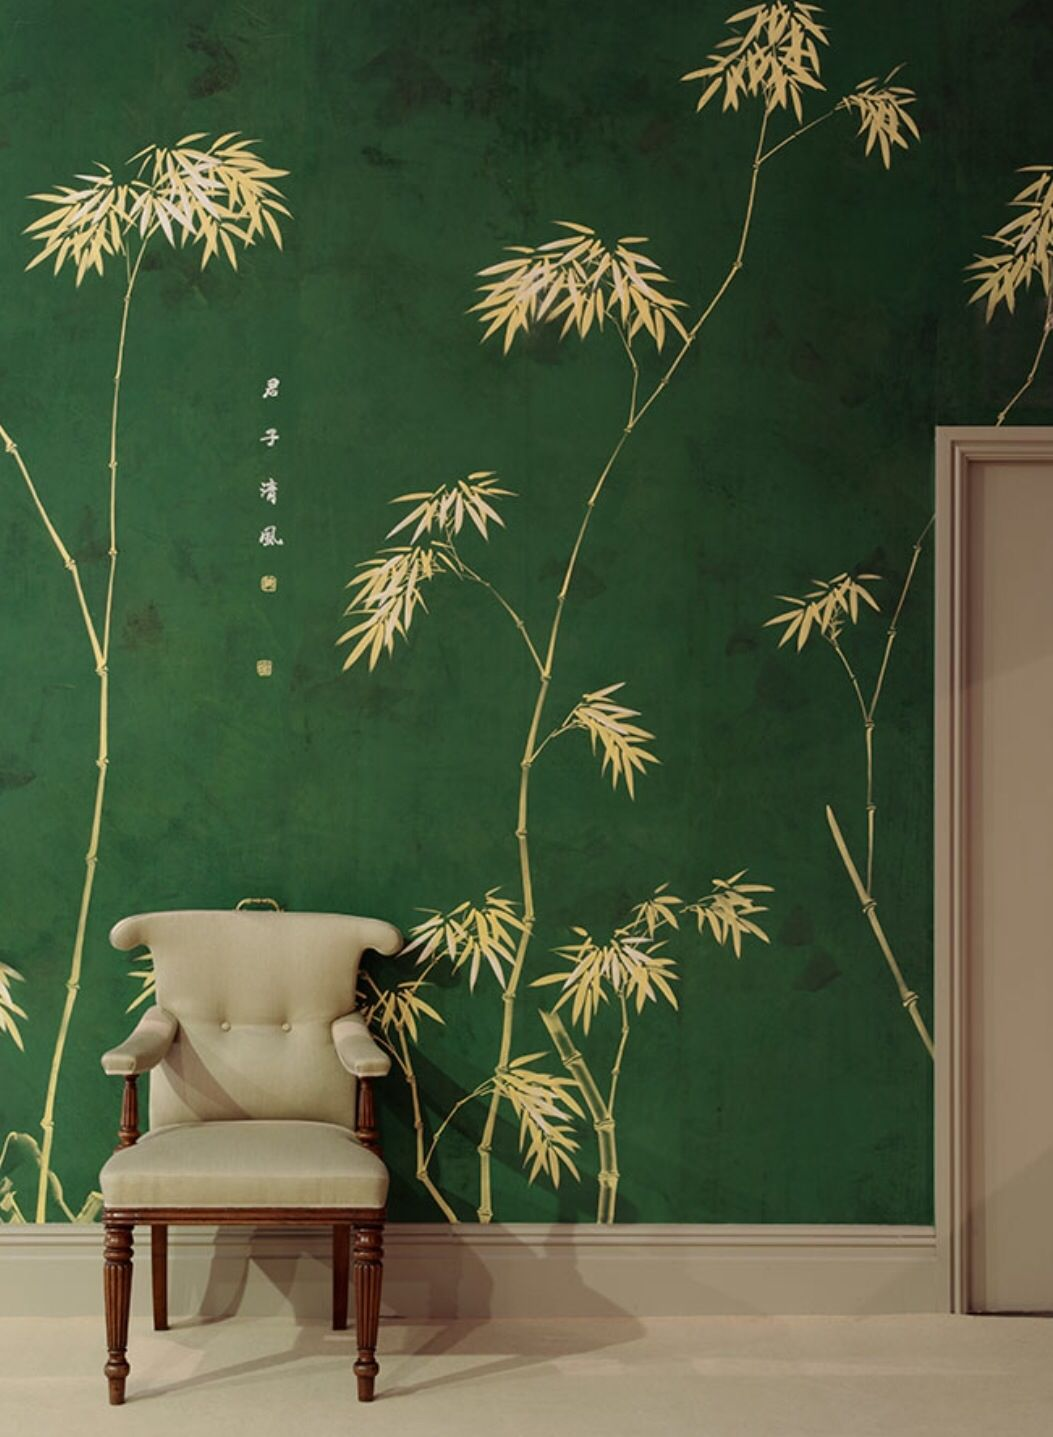 Mural ideas De gournay wallpaper, Chinoiserie wallpaper